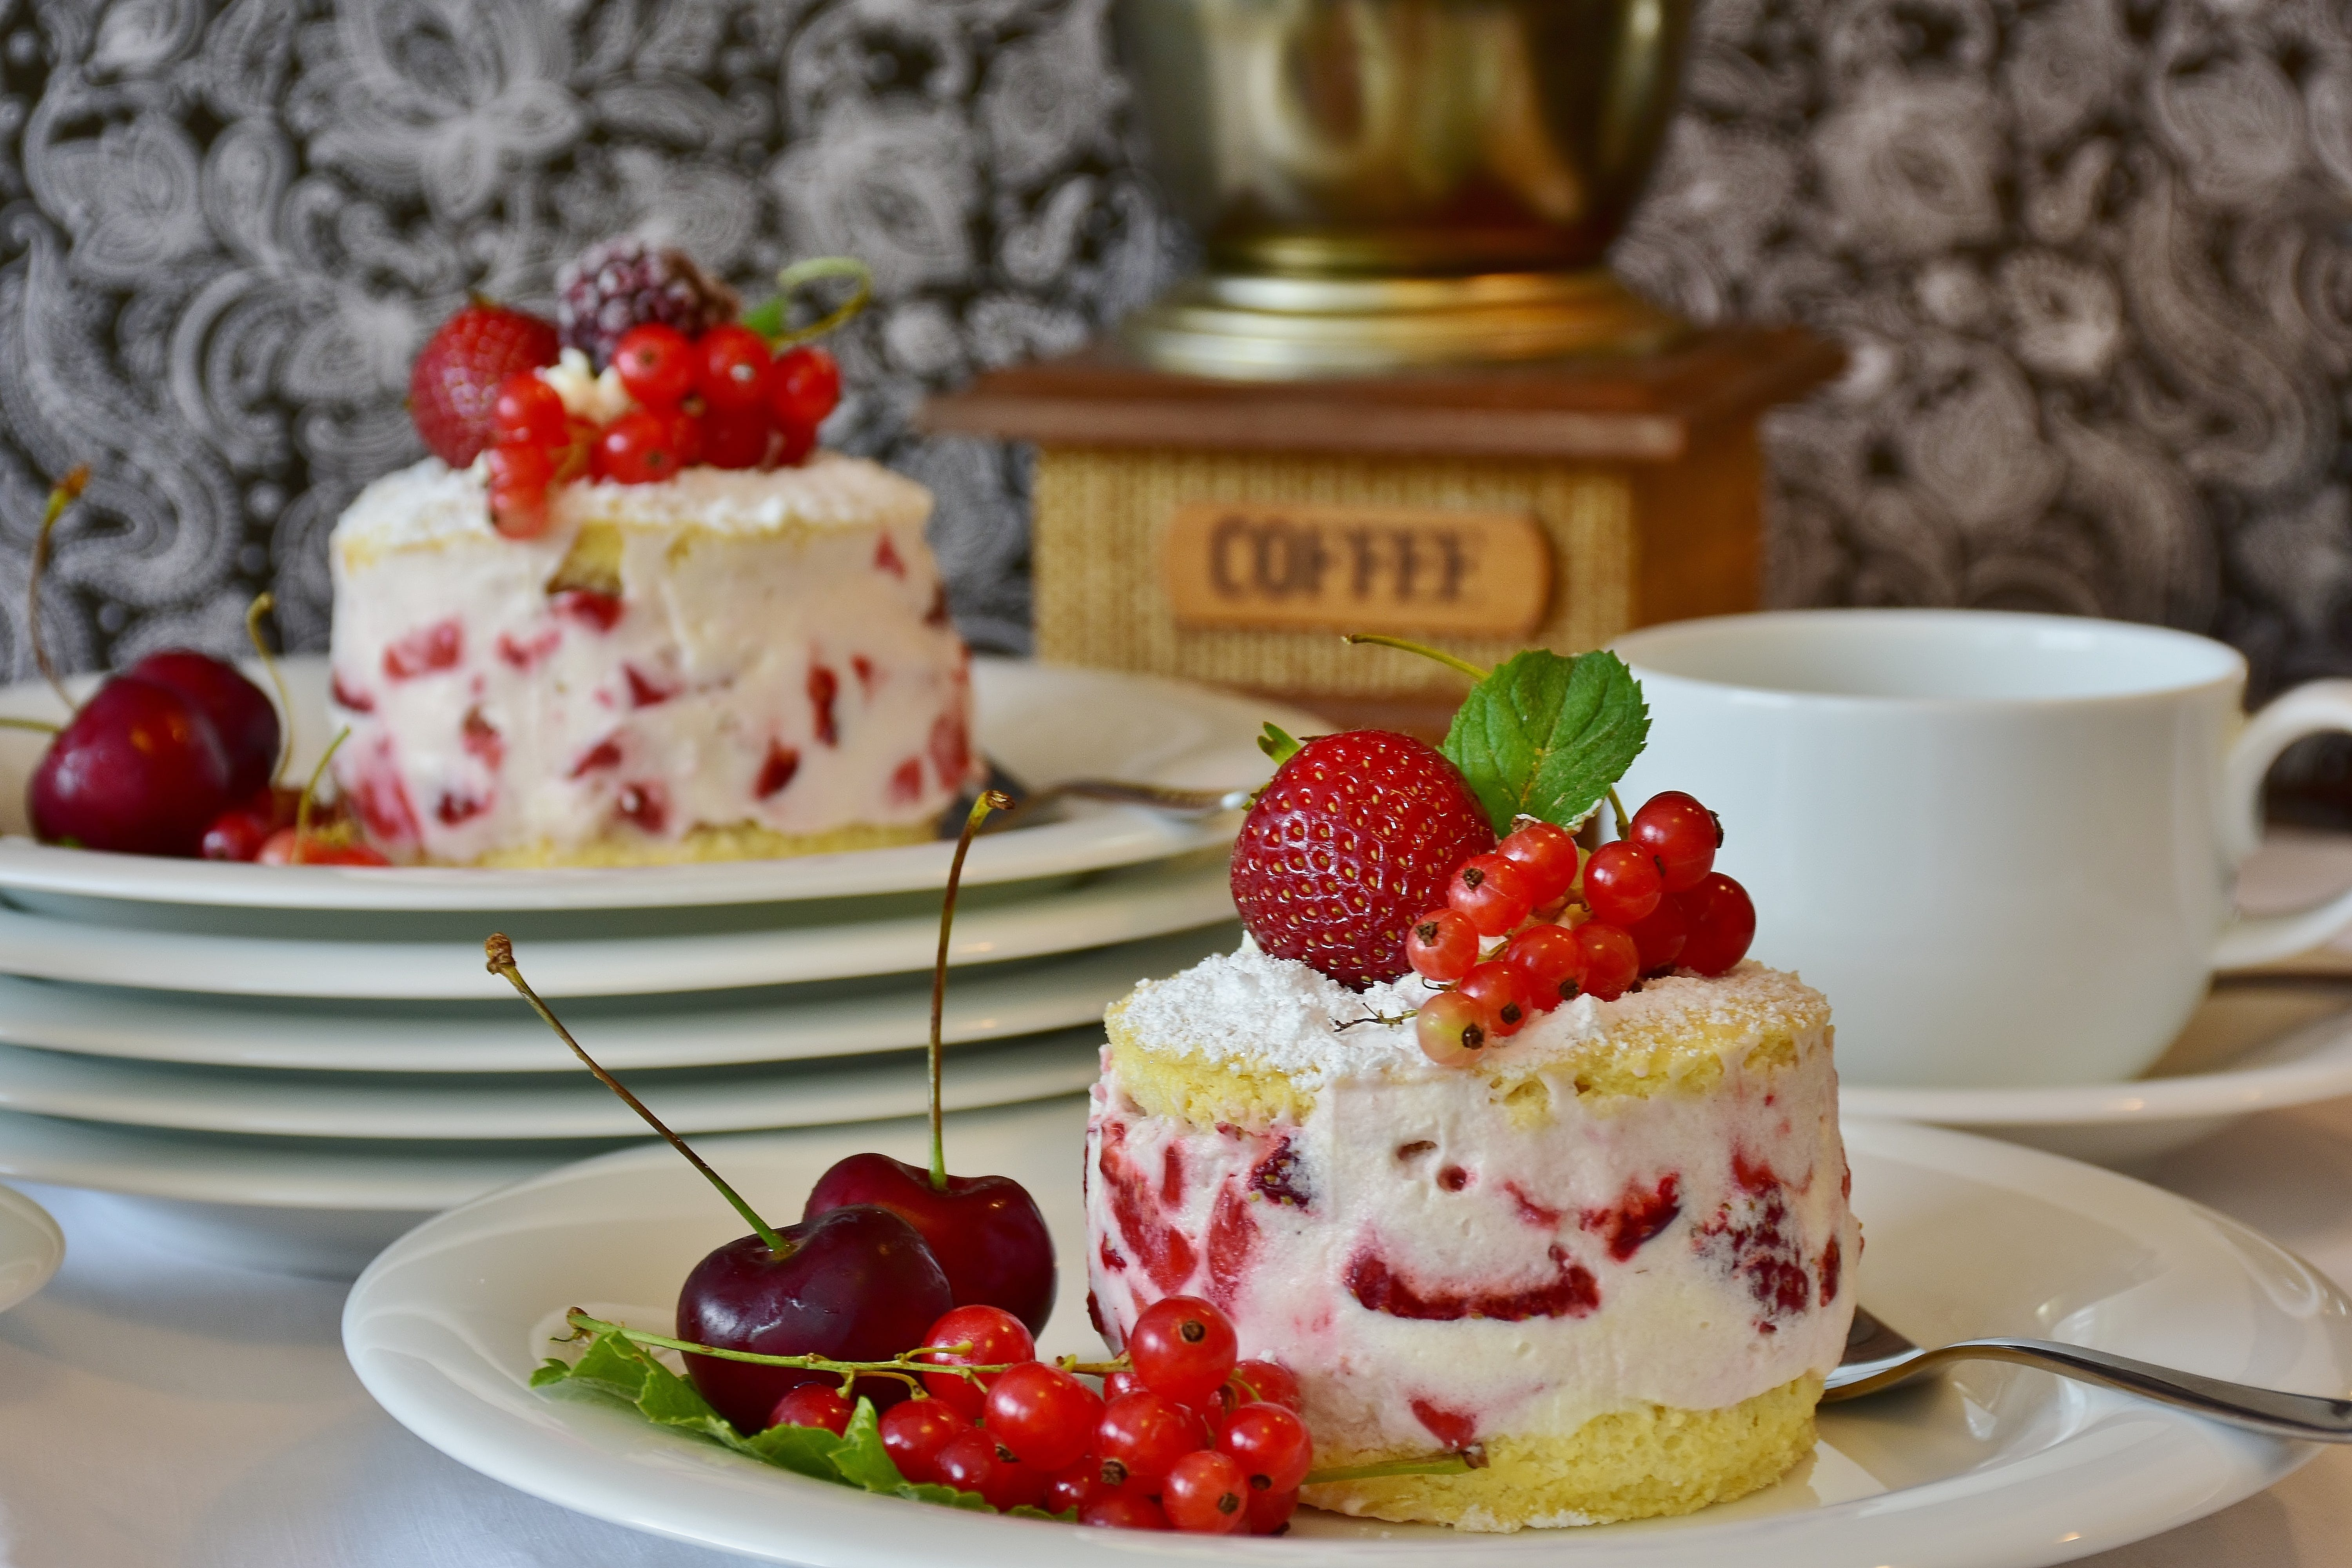 Strawberry Cake Serving in White Ceramic Plate